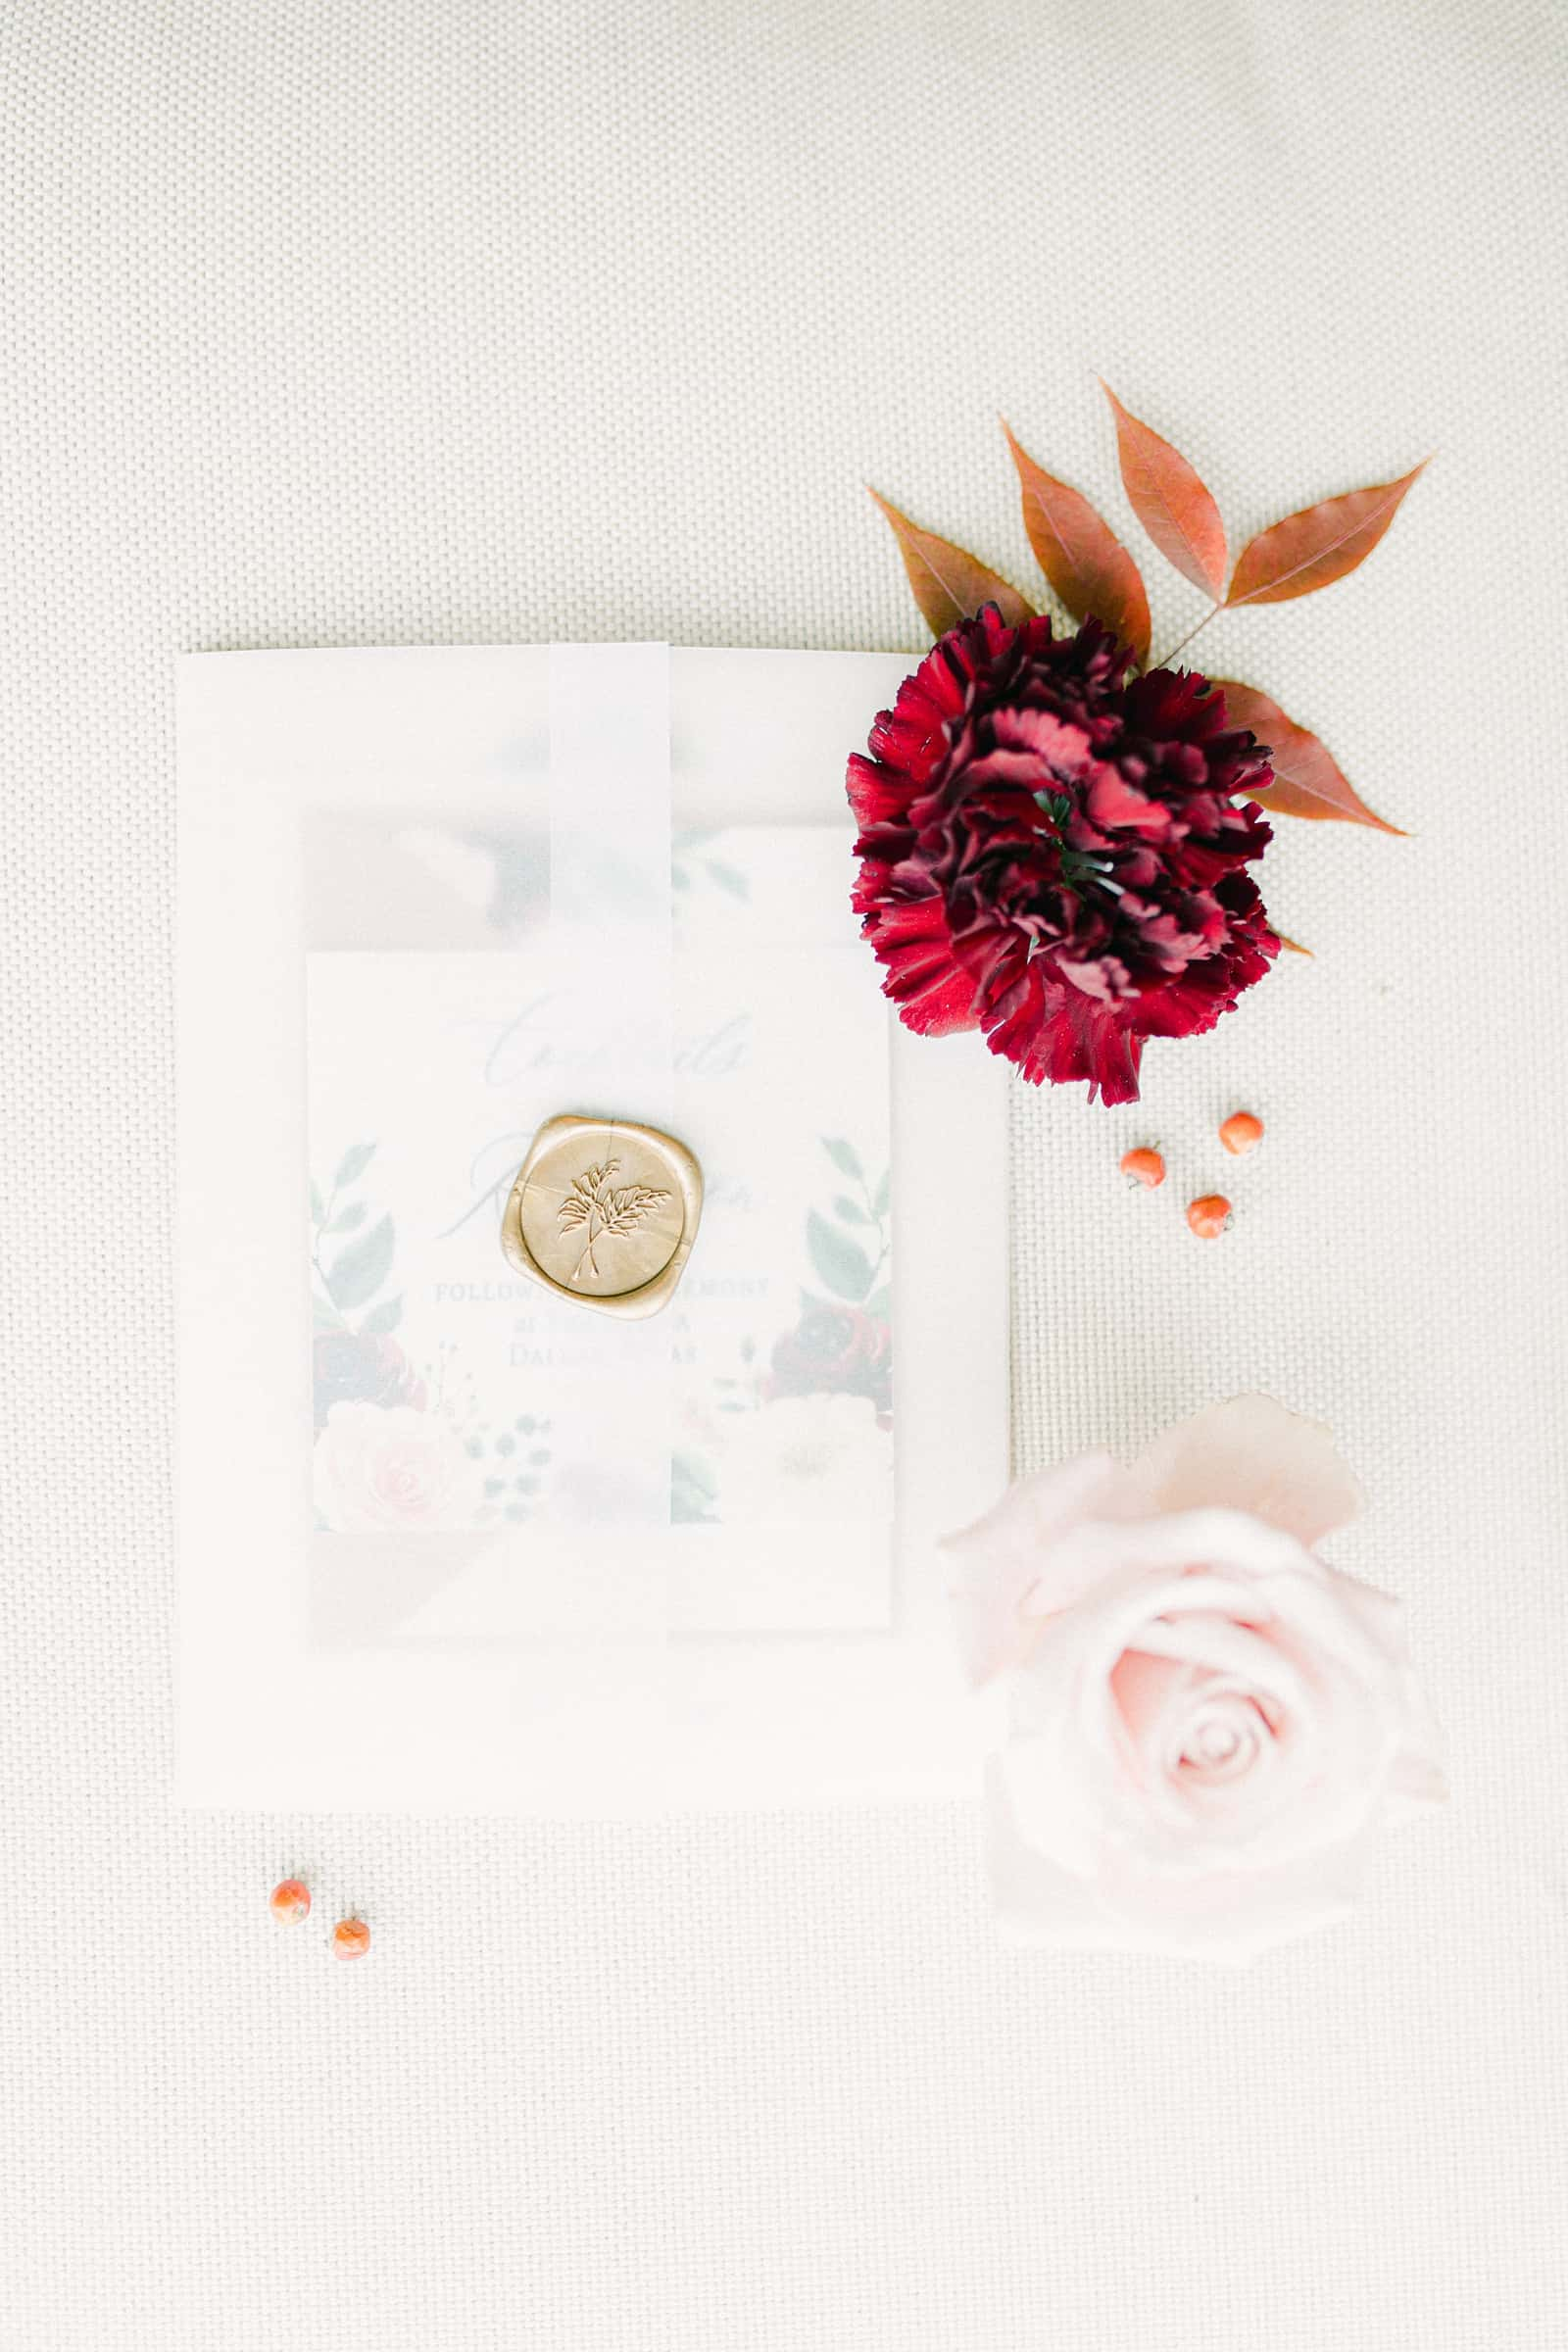 Wedding invitation with vellum paper and gold wax seal